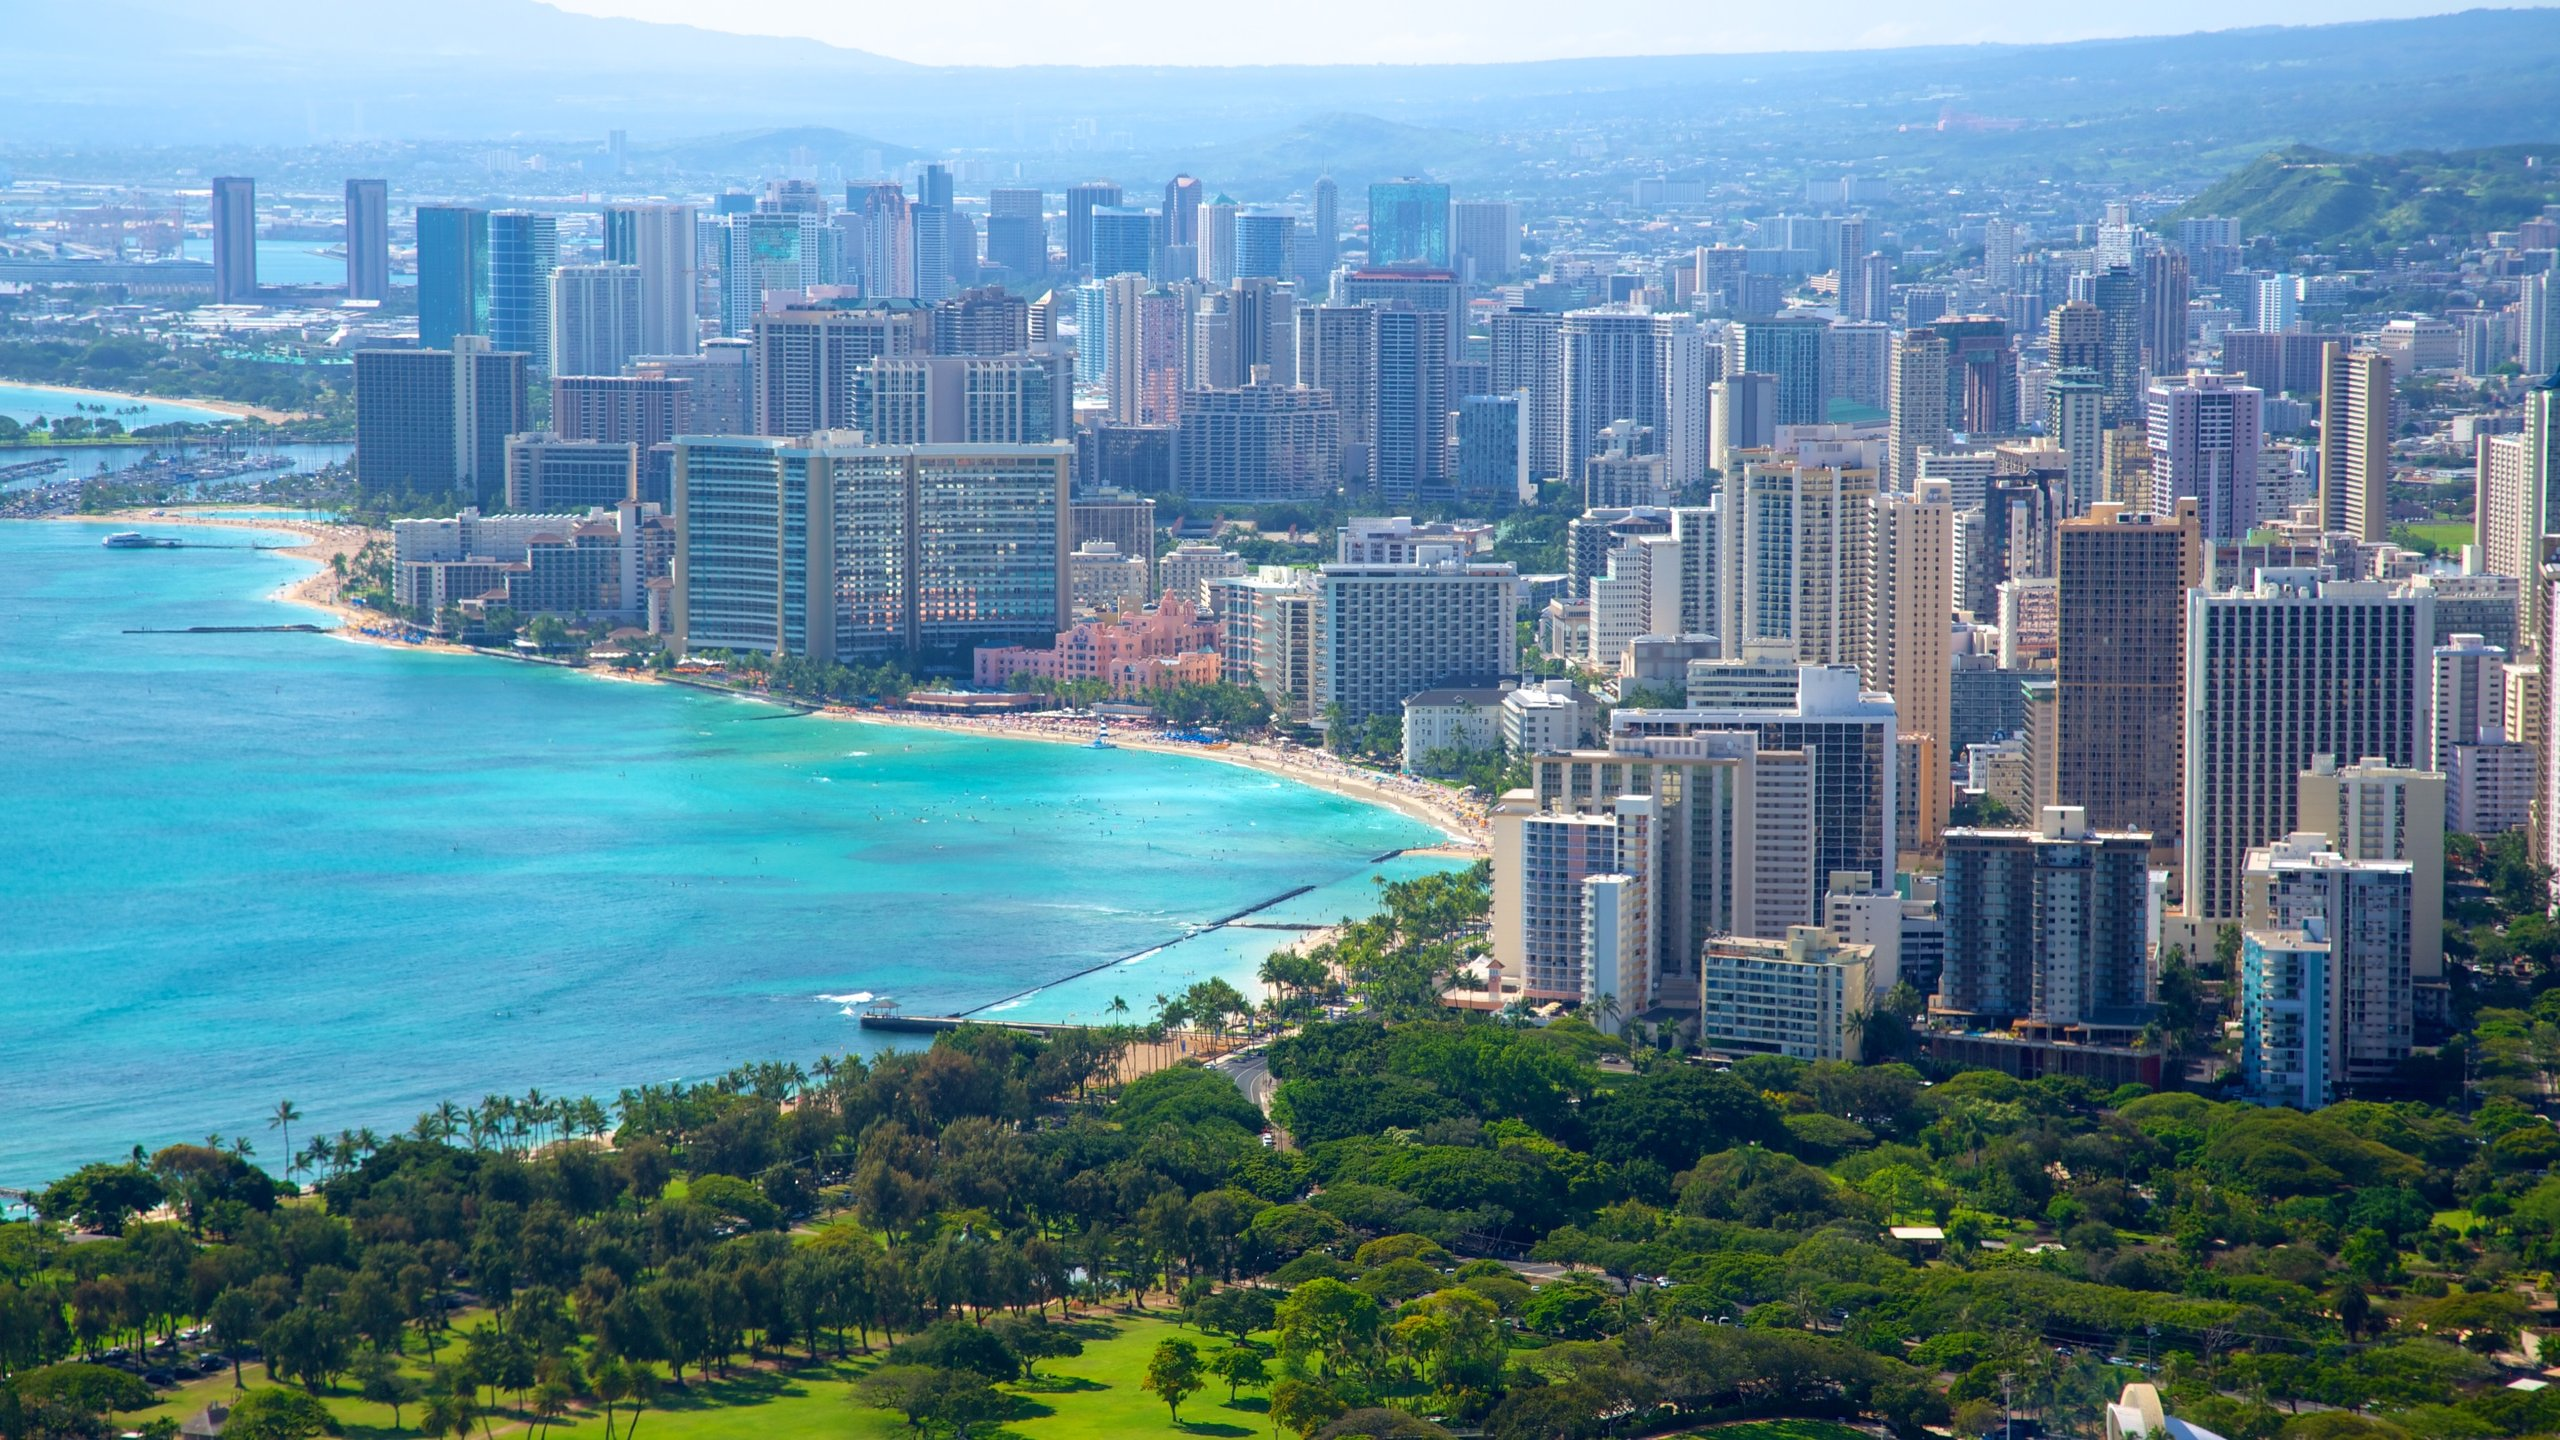 The 10 Best Hotels In Honolulu, Hawaii From $179 For 2019